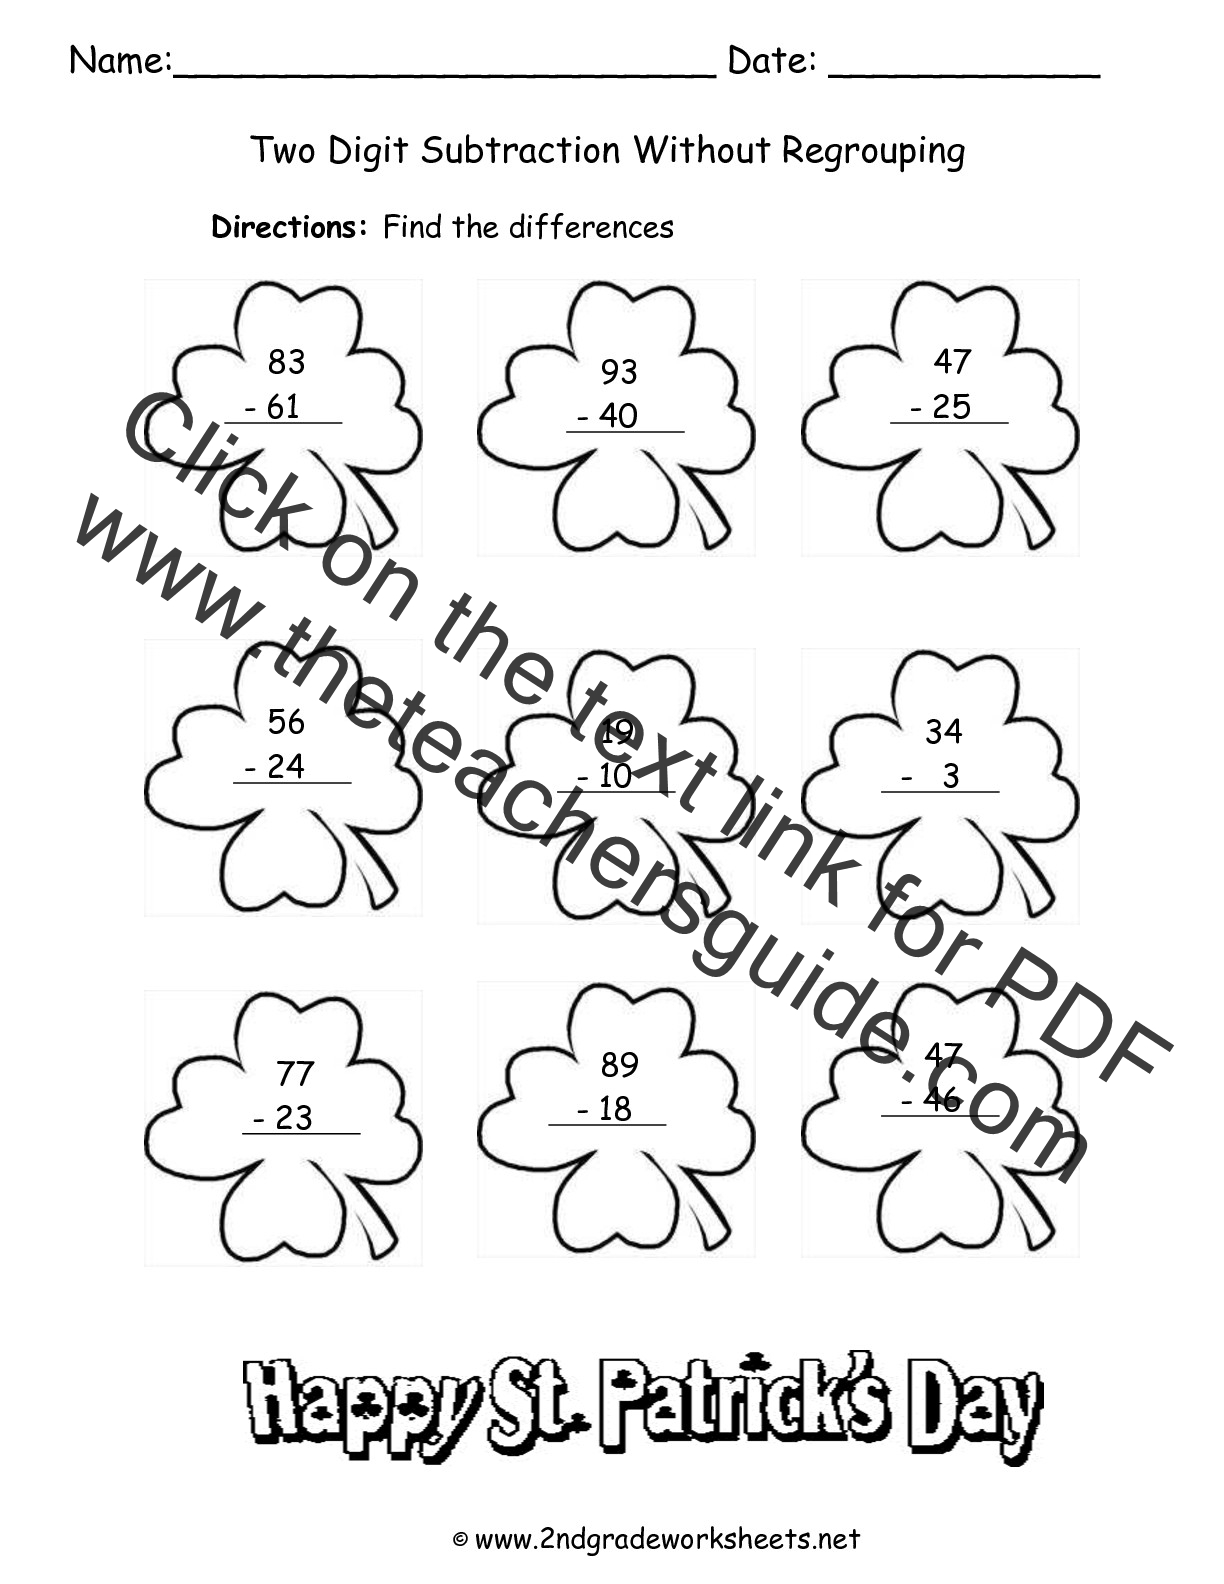 math worksheet : st patrick s day printouts and worksheets : Subtraction Worksheets With And Without Regrouping